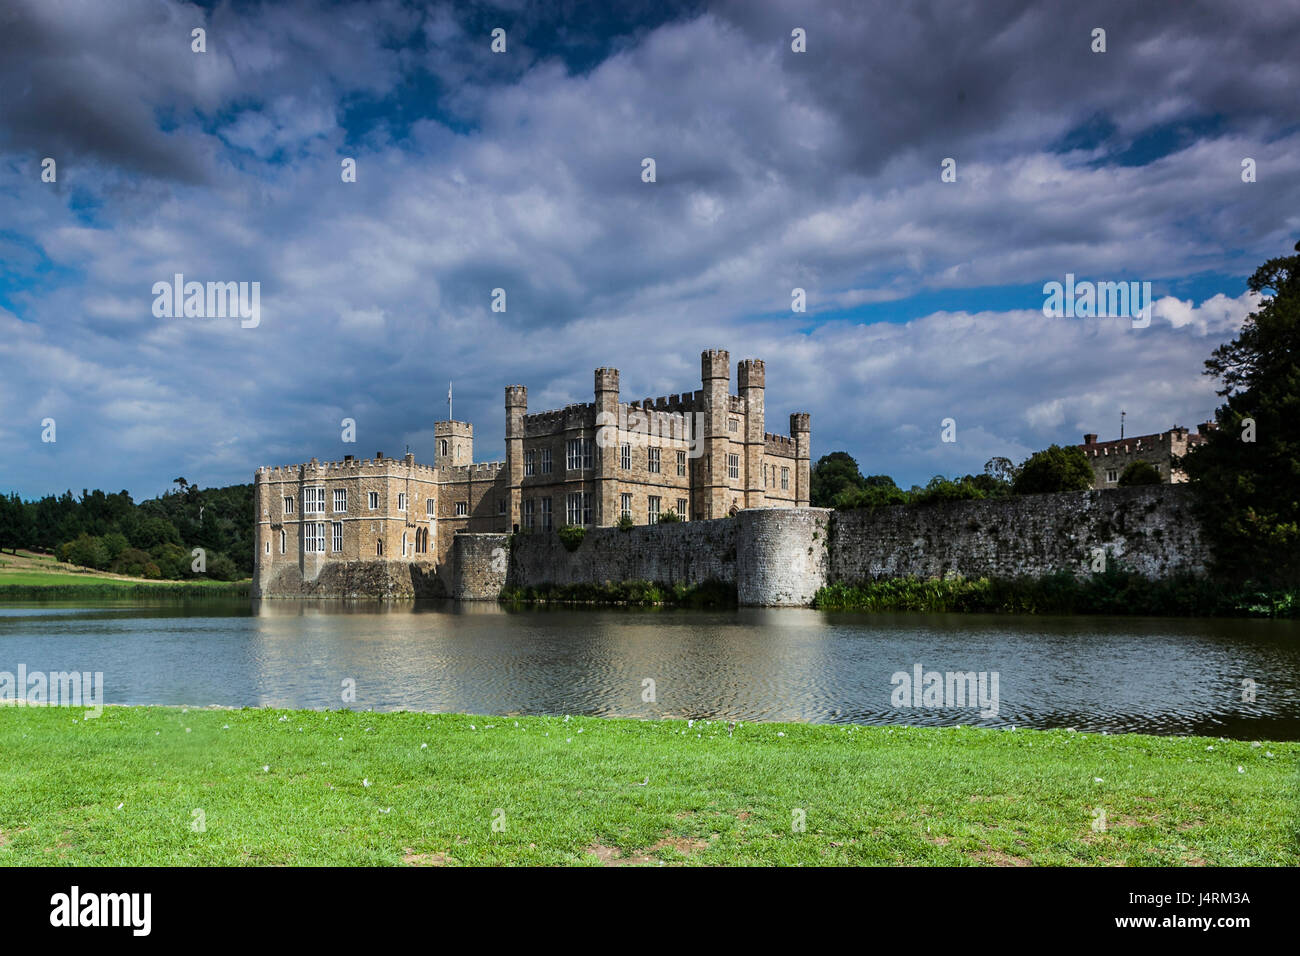 Leeds castle, situated in Kent, England - Stock Image